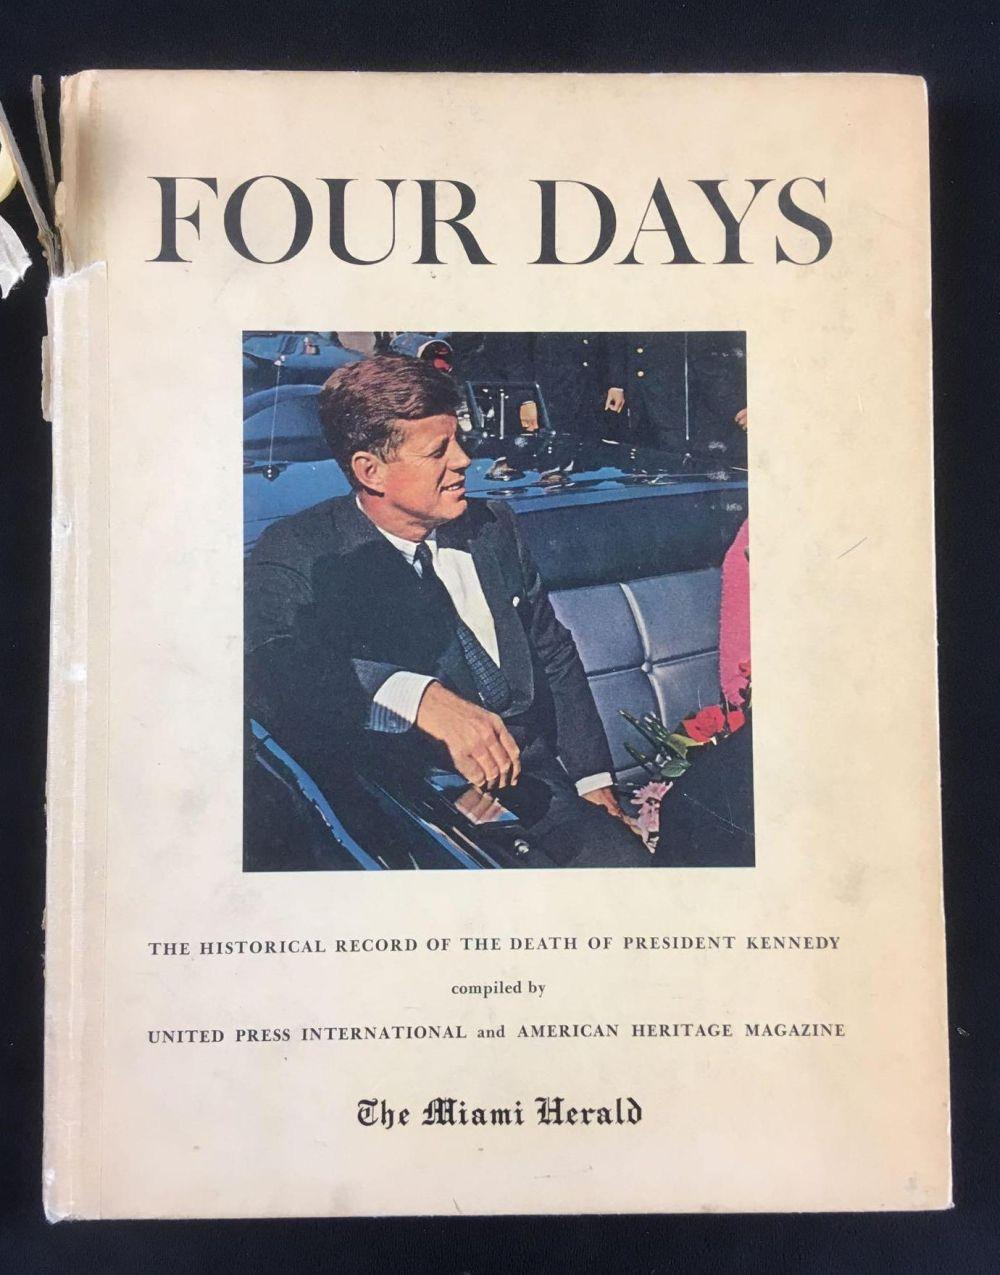 Lot 357: Four Days The Historical Record of the Death of President Kennedy Hardcover Book